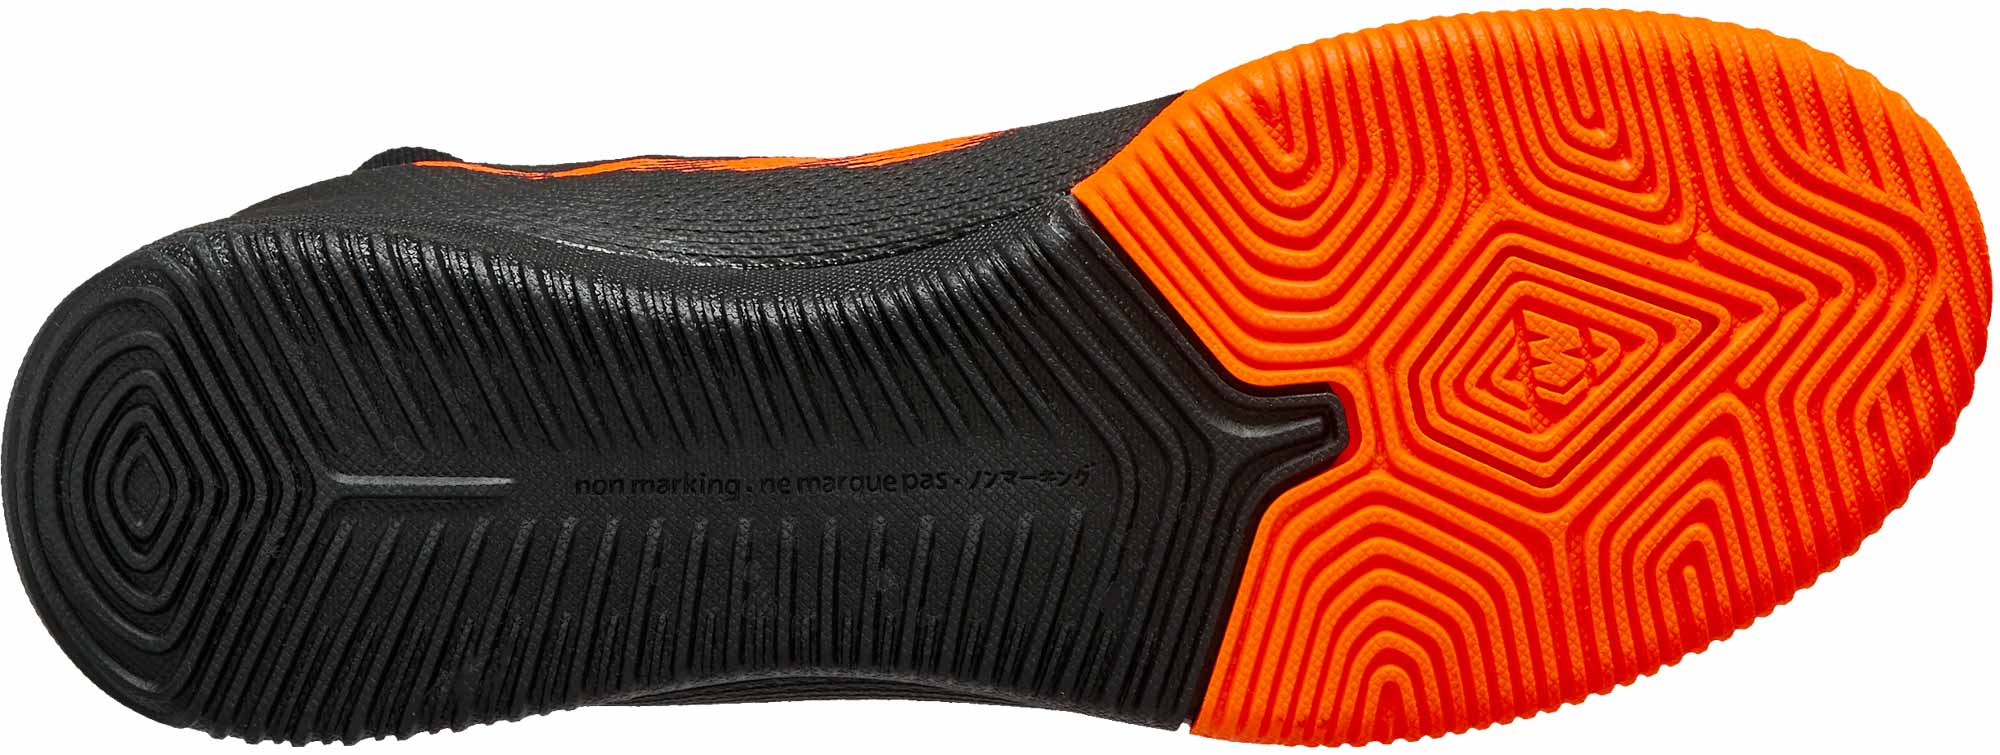 375613b0c ... ah7343 810  nike superflyx 6 academy ic black total orange